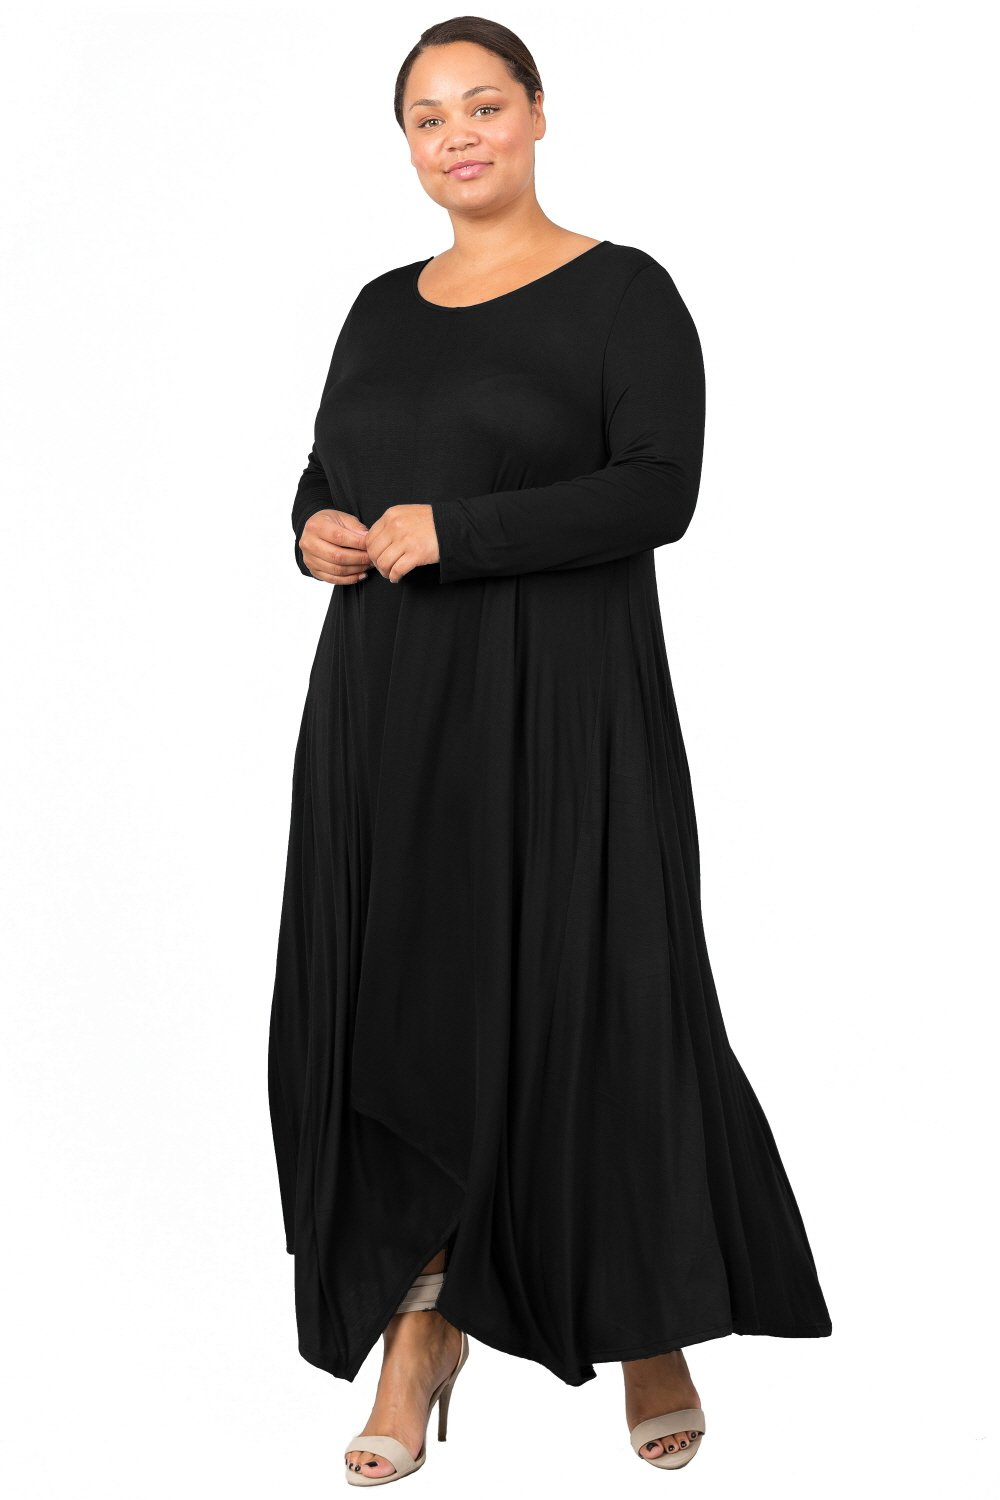 Love In D6190C-PX Long Sleeve Round Neck Flared Maxi Dress W/Pocket Black 1X